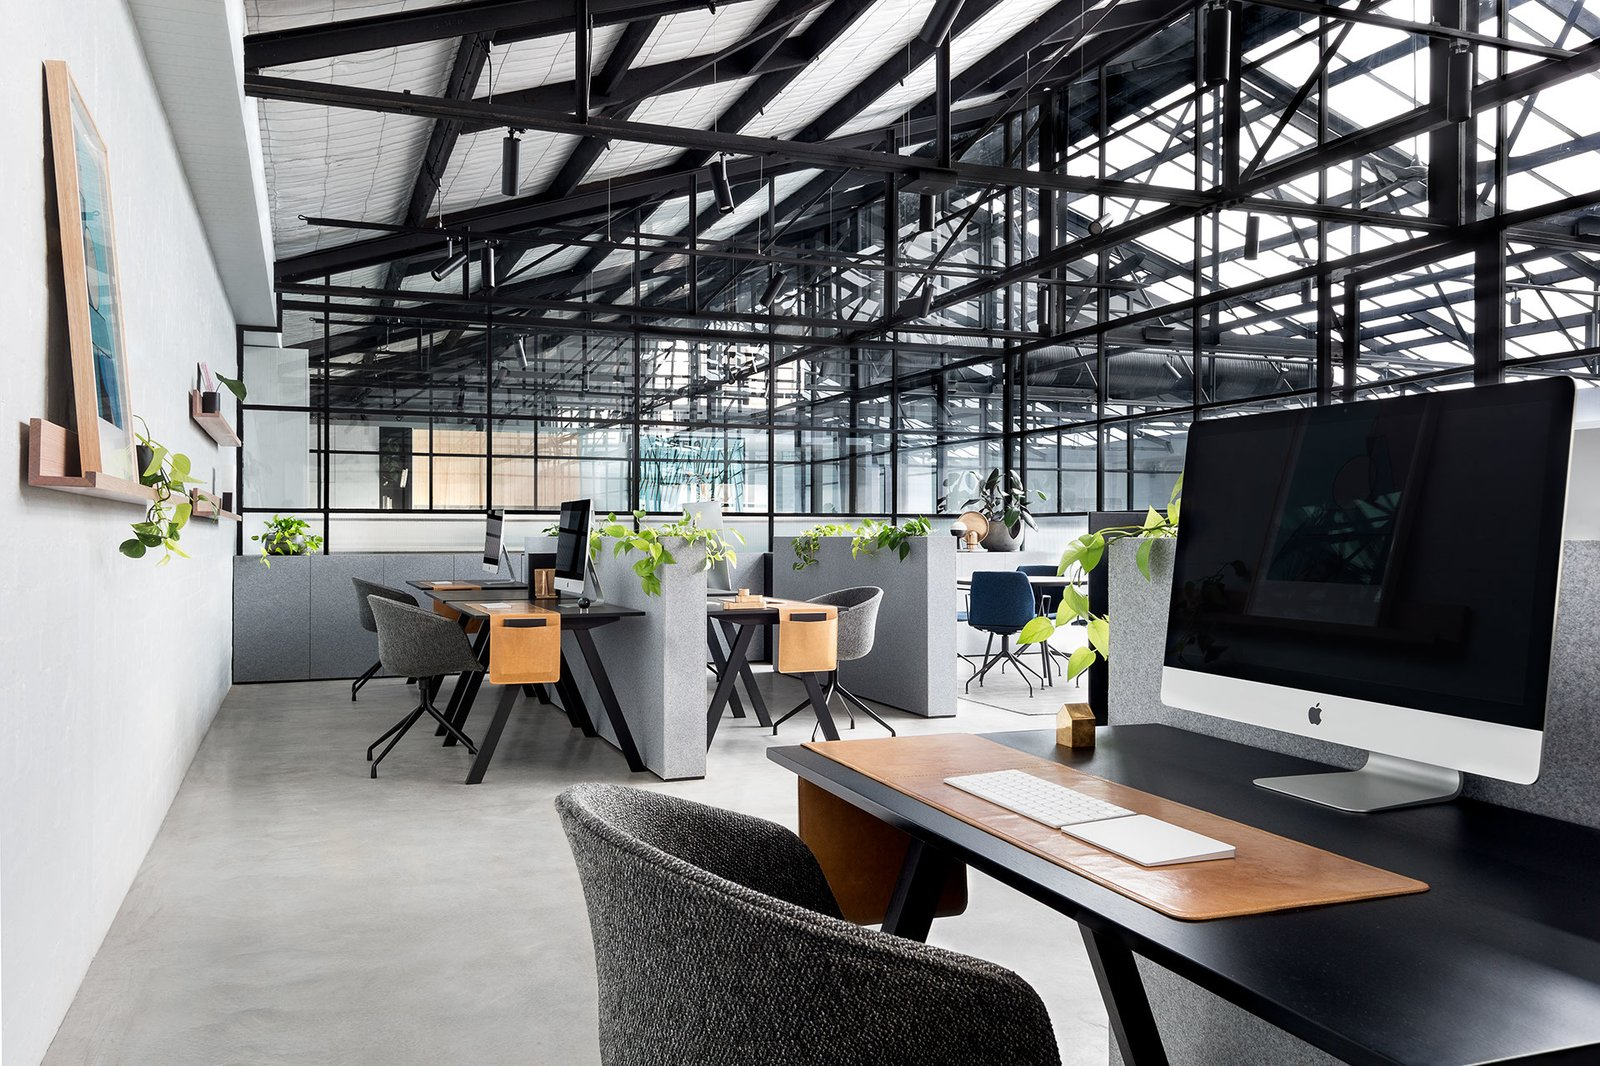 Office, Study Room Type, Chair, Shelves, Concrete Floor, and Desk  Photo 9 of 14 in An Art Deco Warehouse in Melbourne Is Converted Into a Shared Office Space